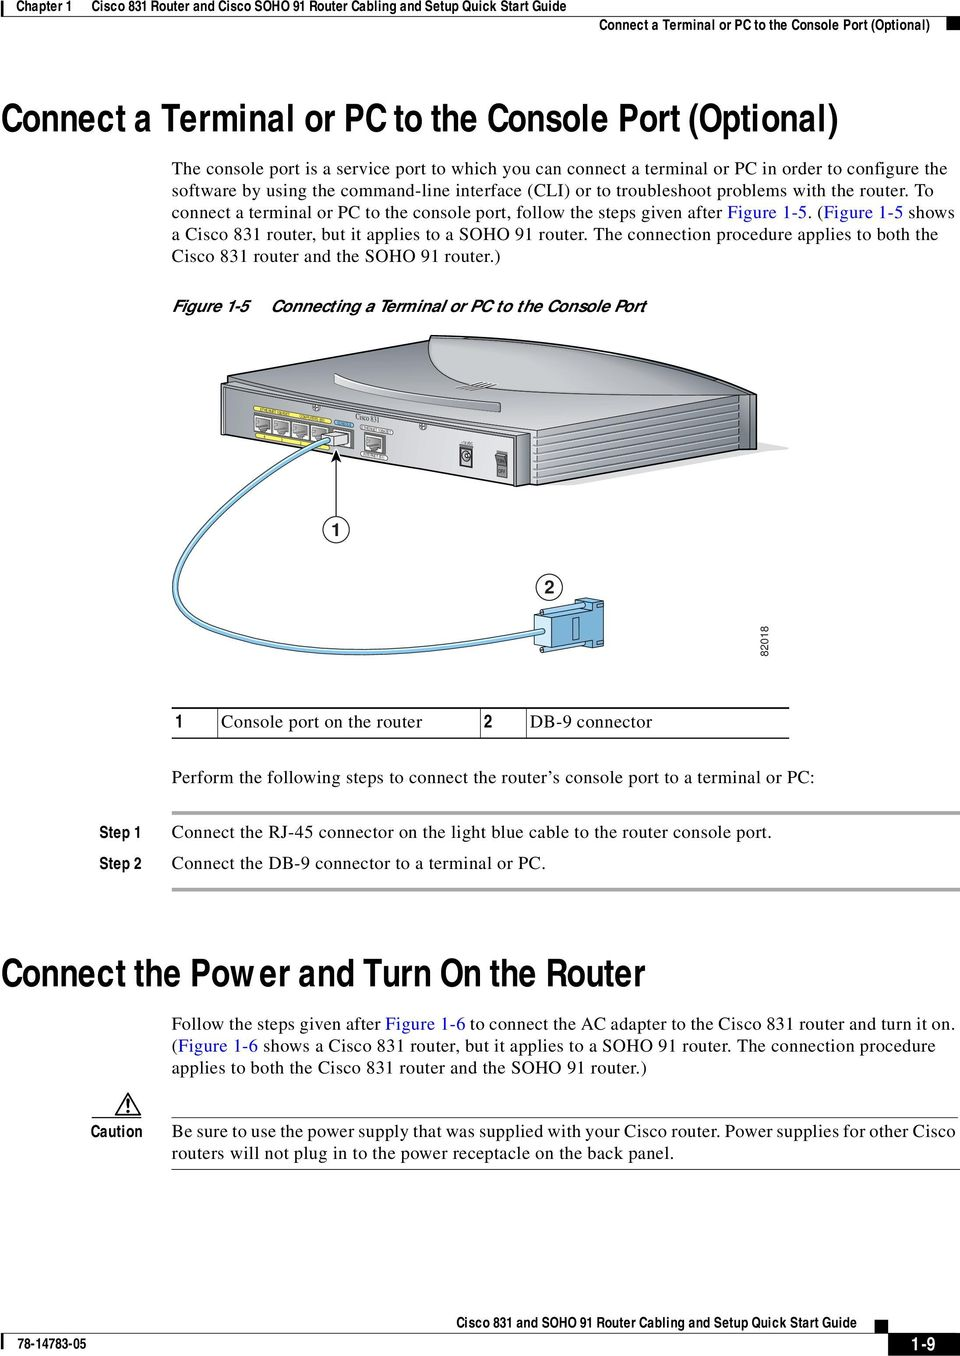 Cisco 831 Router And Soho 91 Cabling Setup Quick Console Cable Wiring Diagram 3550 To Connect A Terminal Or Pc The Port Follow Steps Given After